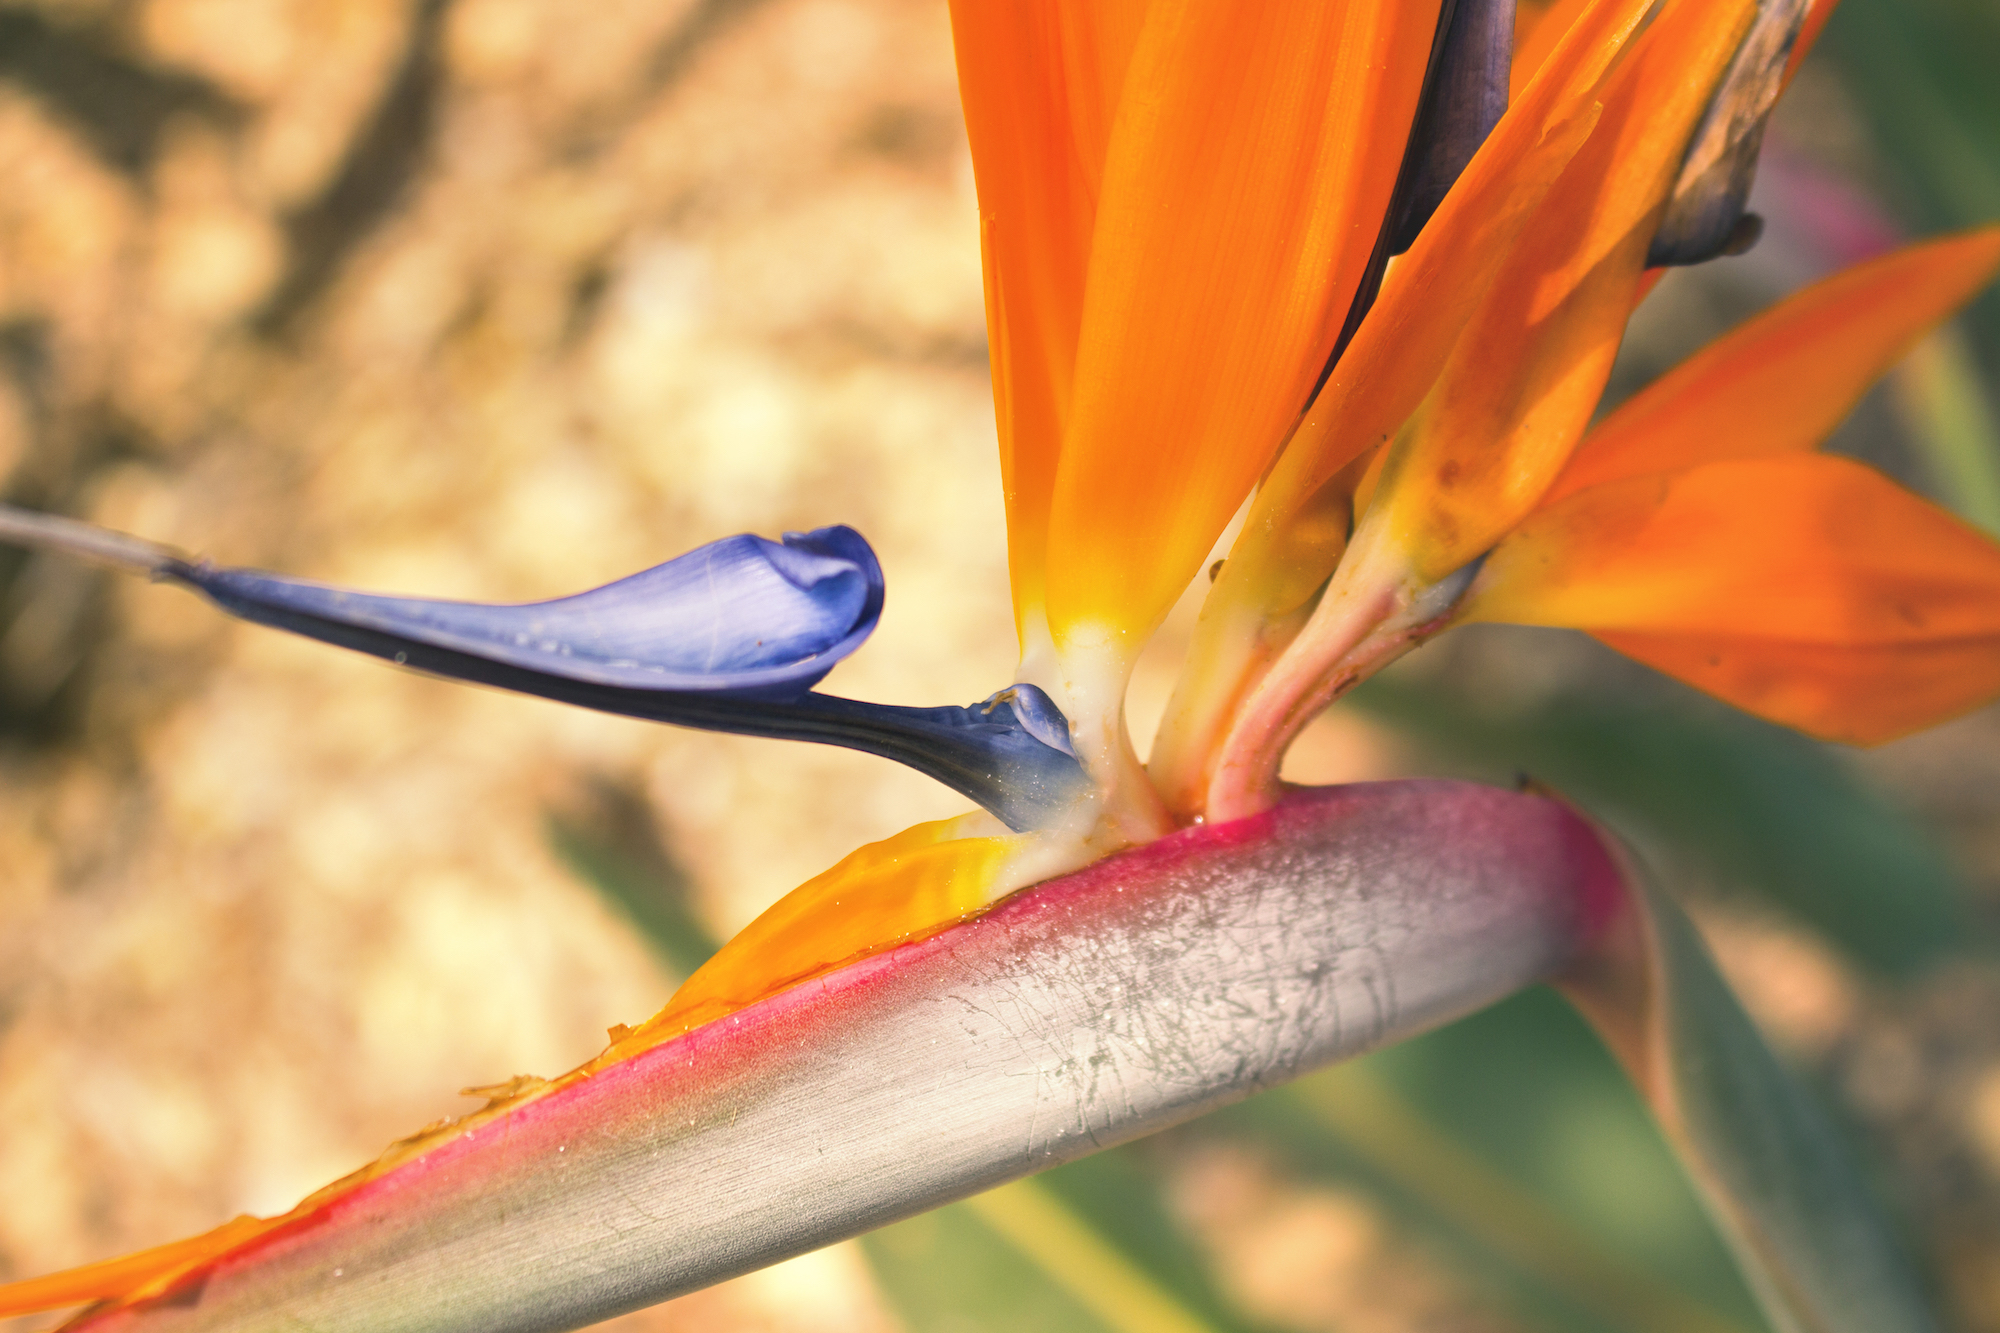 Birds of Paradise in Ramat HaNadiv, gardens in Israel. #Travel photography by Geena Matuson @geenamatuson #thegirlmirage.